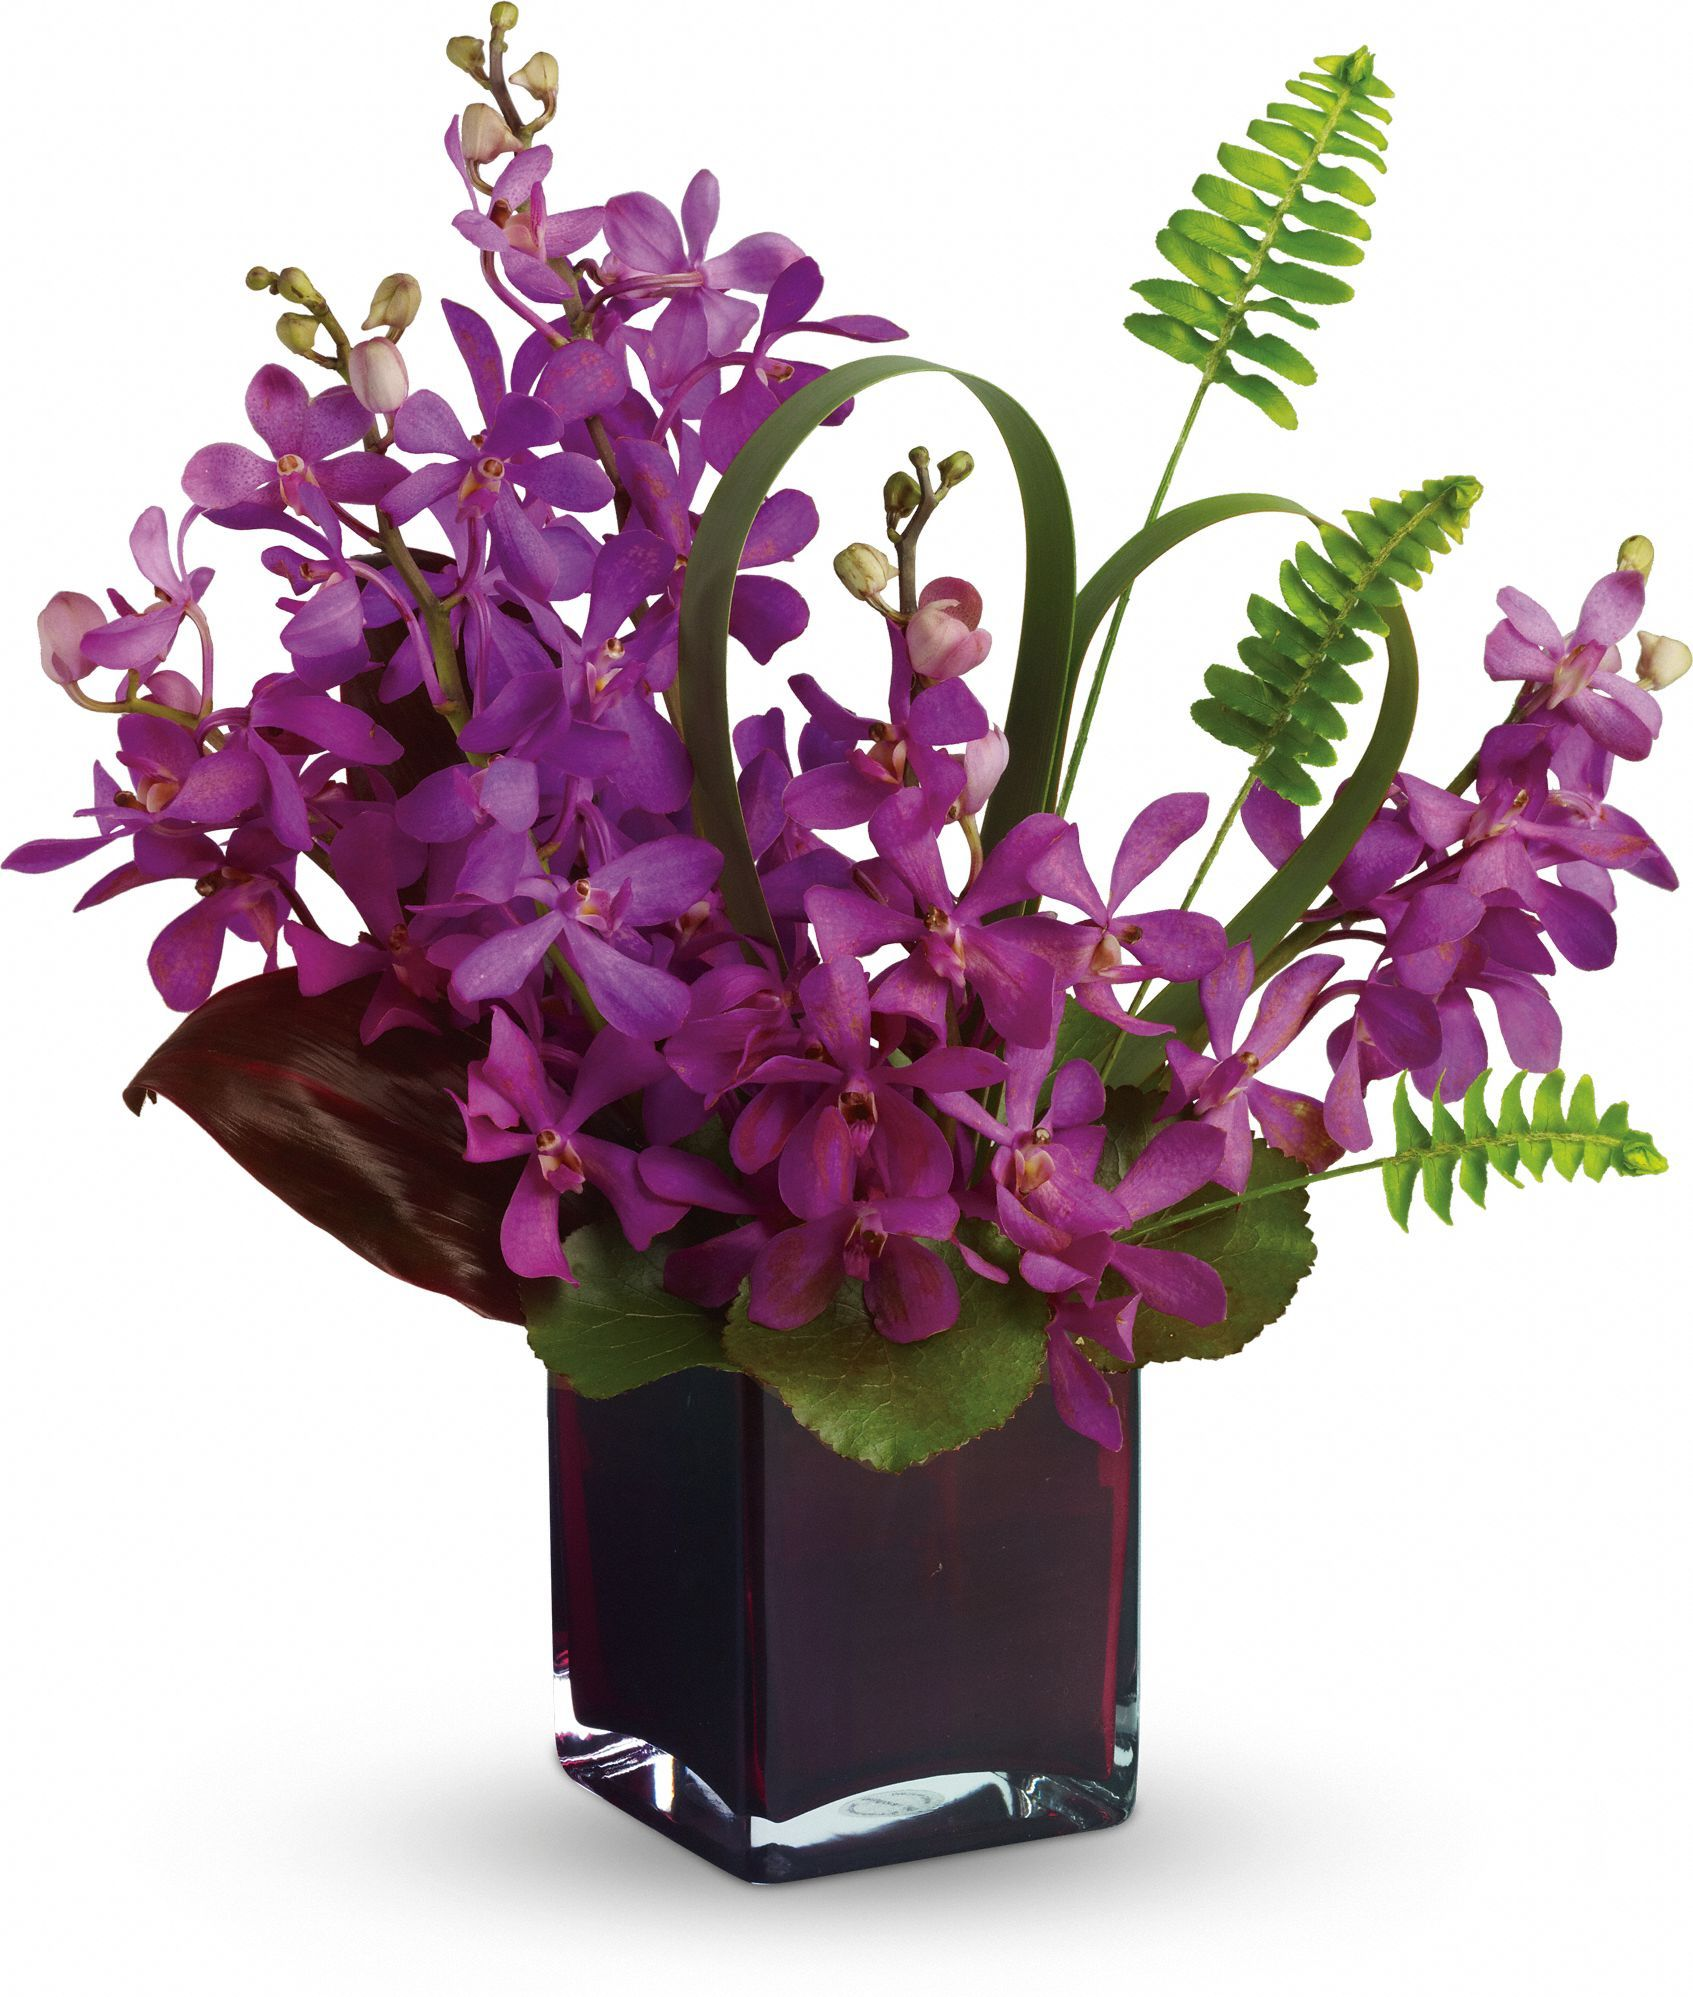 Teleflora's Island Princess Save 25 on this bouquet and